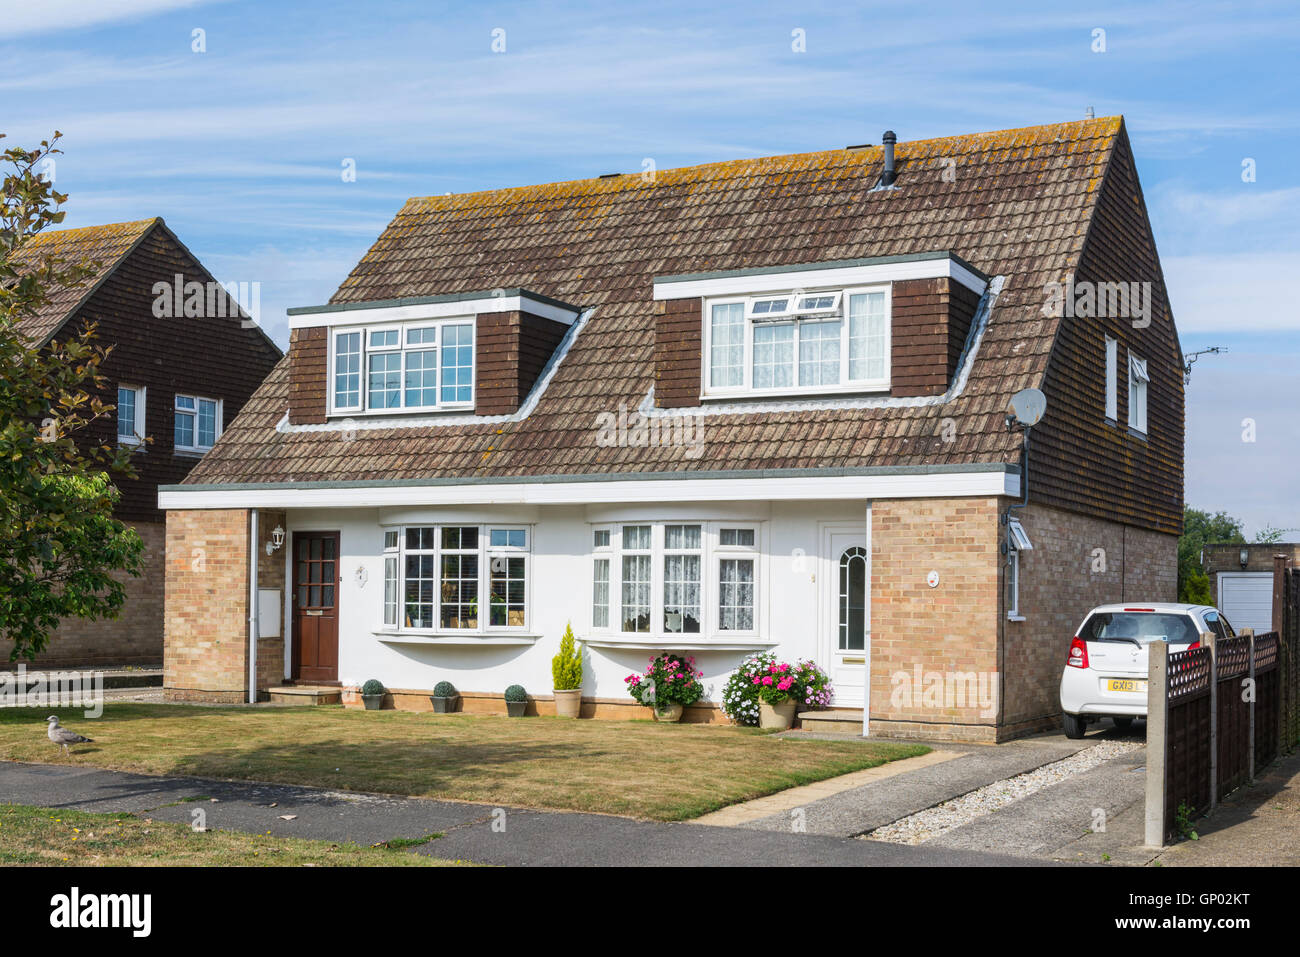 Semi Detached Stock Photos & Semi Detached Stock Images - Alamy